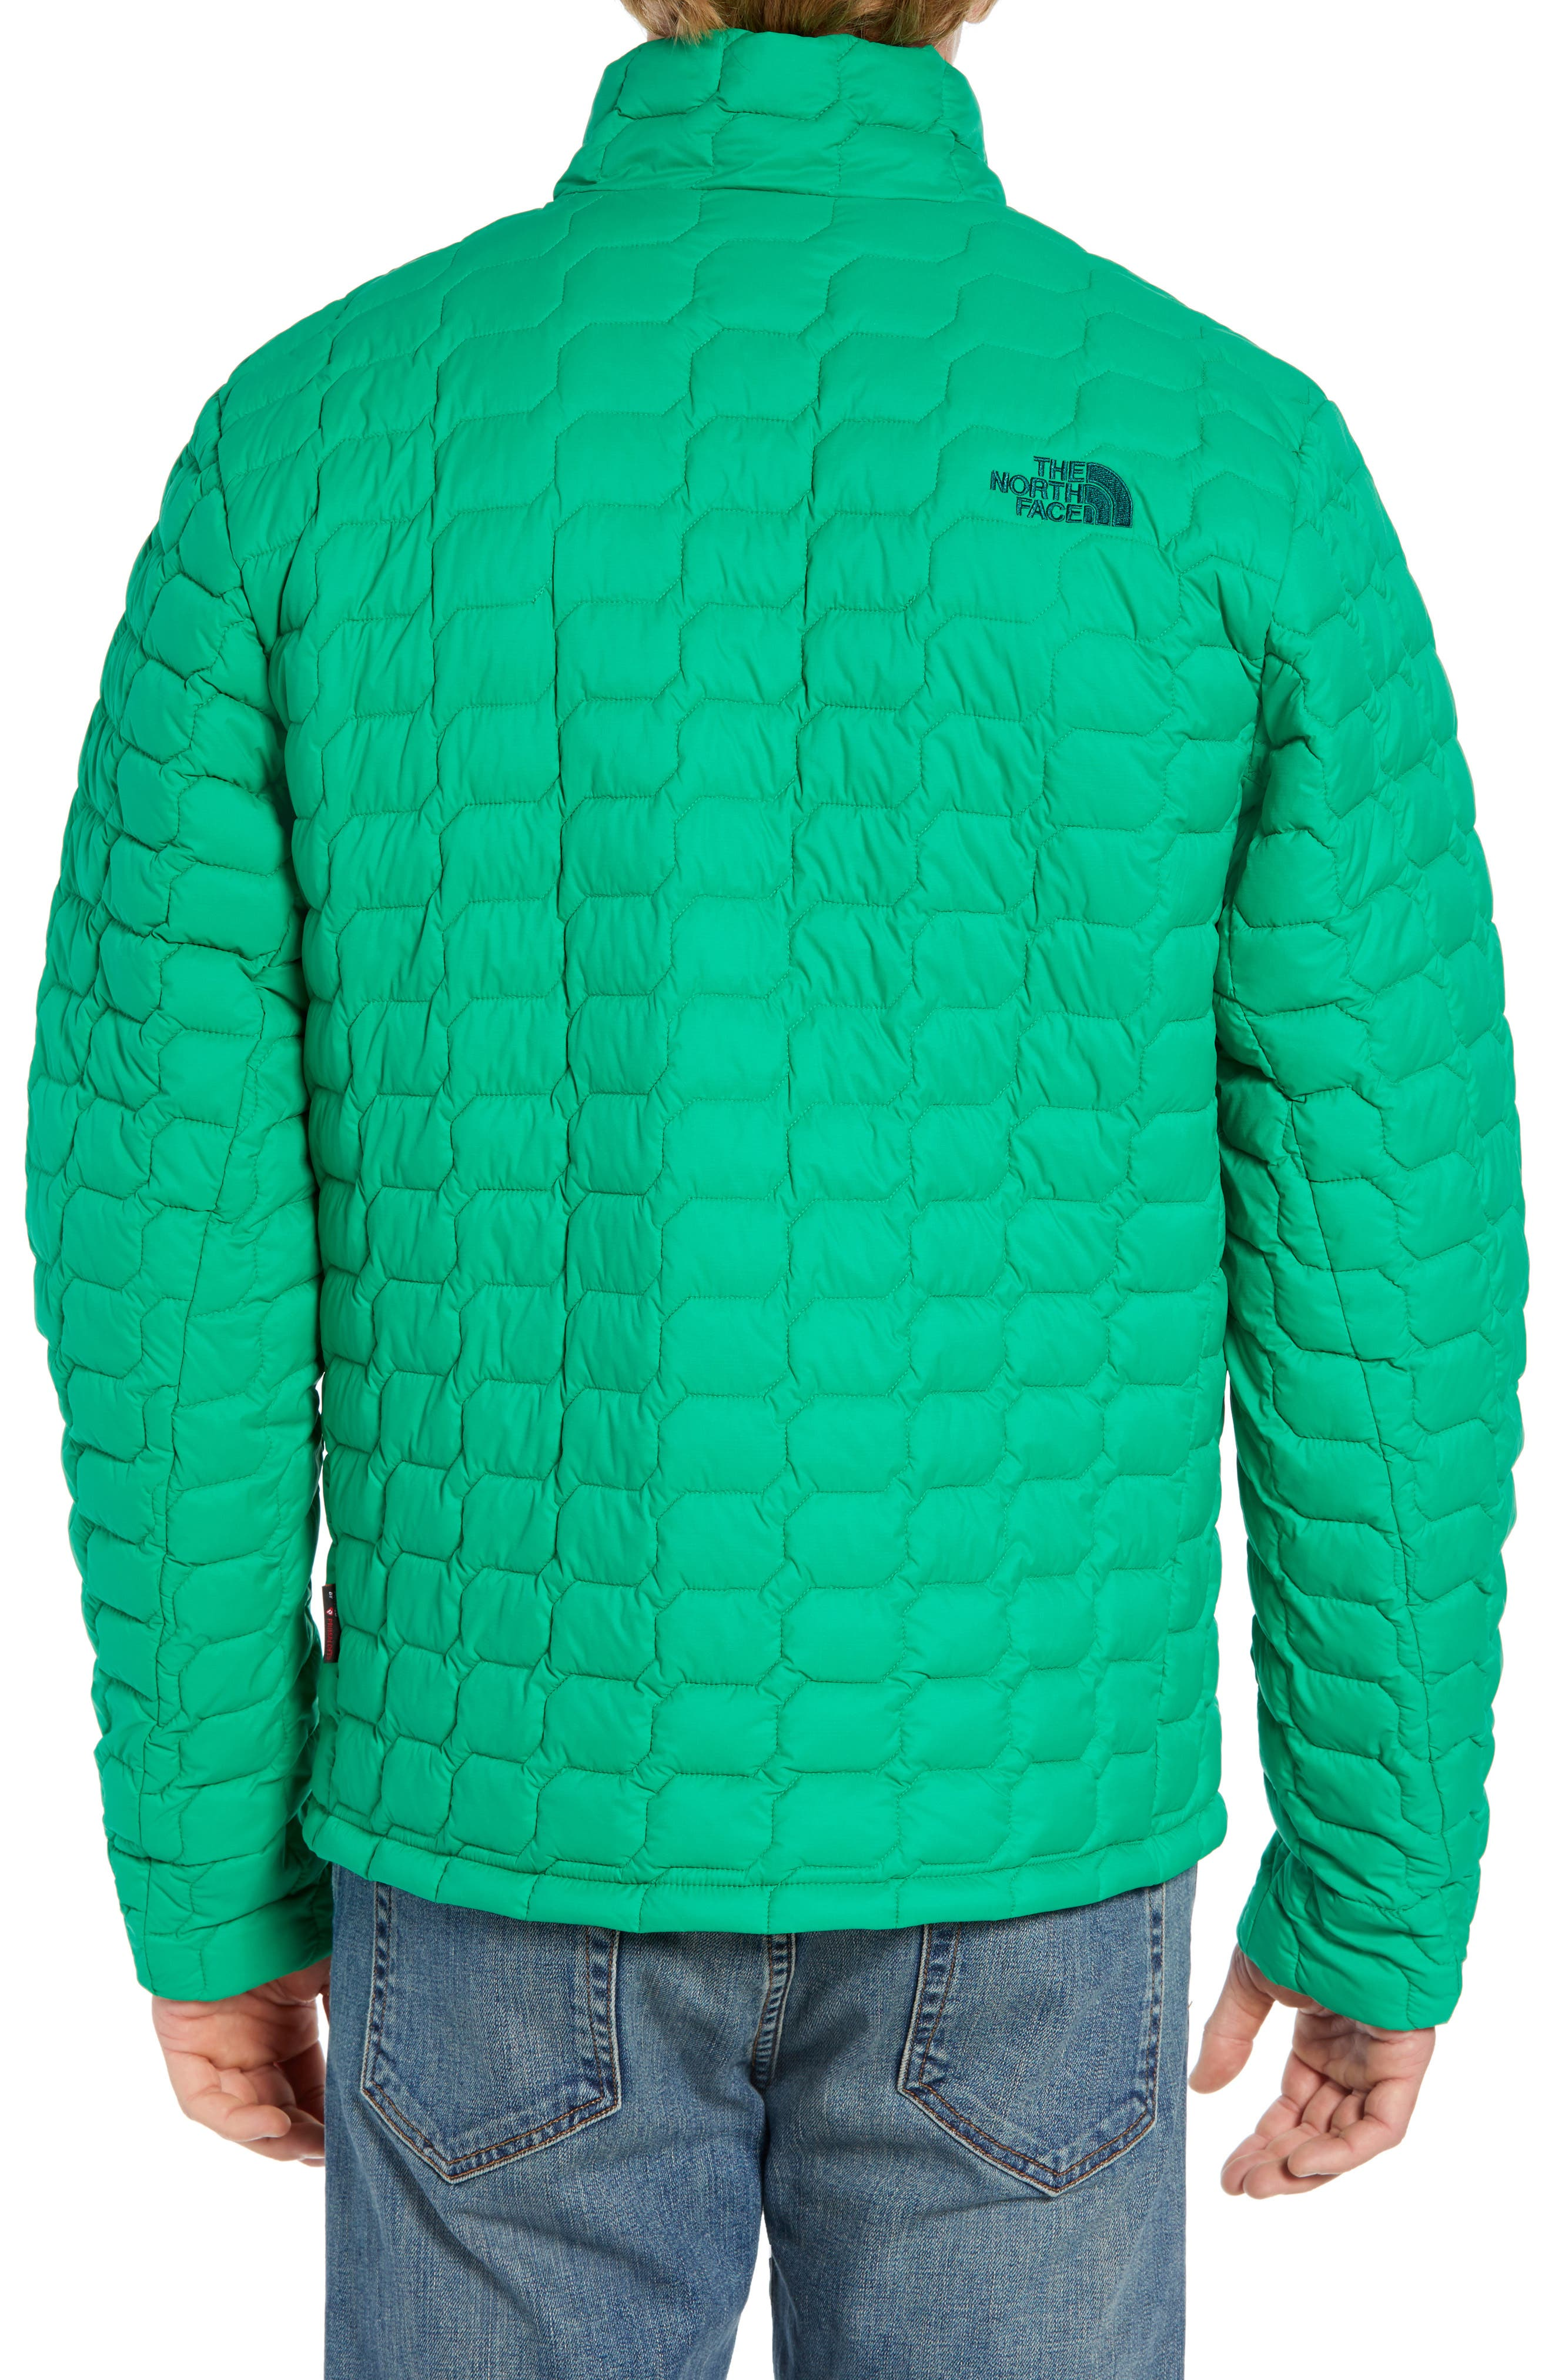 THE NORTH FACE,                             ThermoBall<sup>™</sup> Jacket,                             Alternate thumbnail 2, color,                             PRIMARY GREEN MATTE